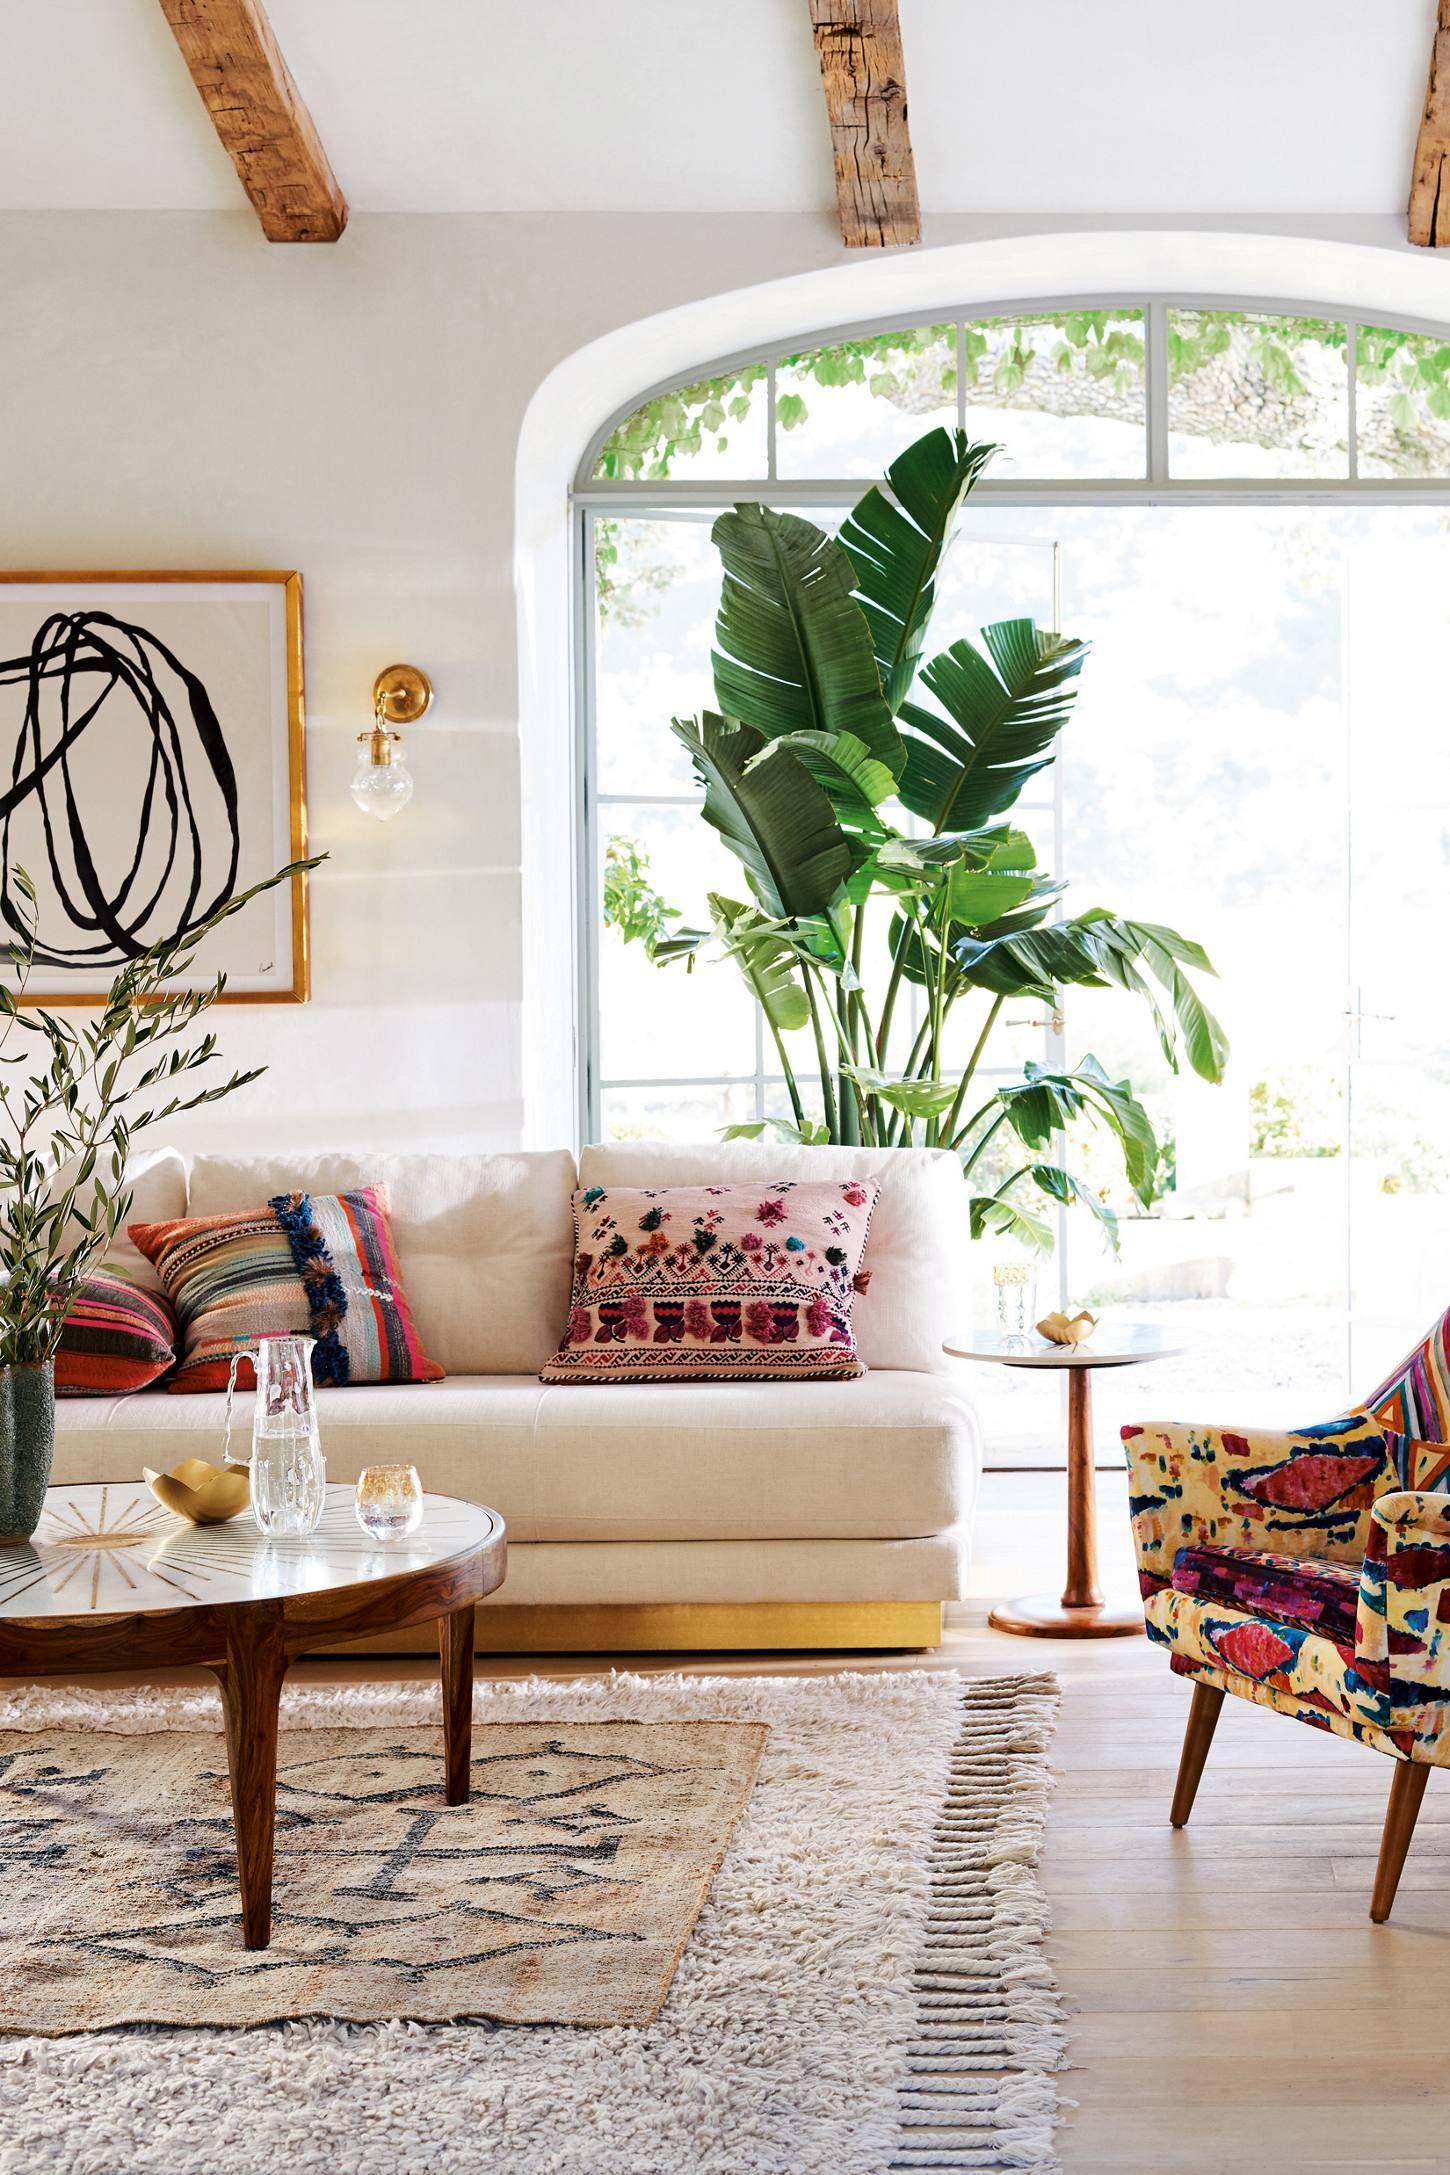 Shop the Platte Rug and more Anthropologie